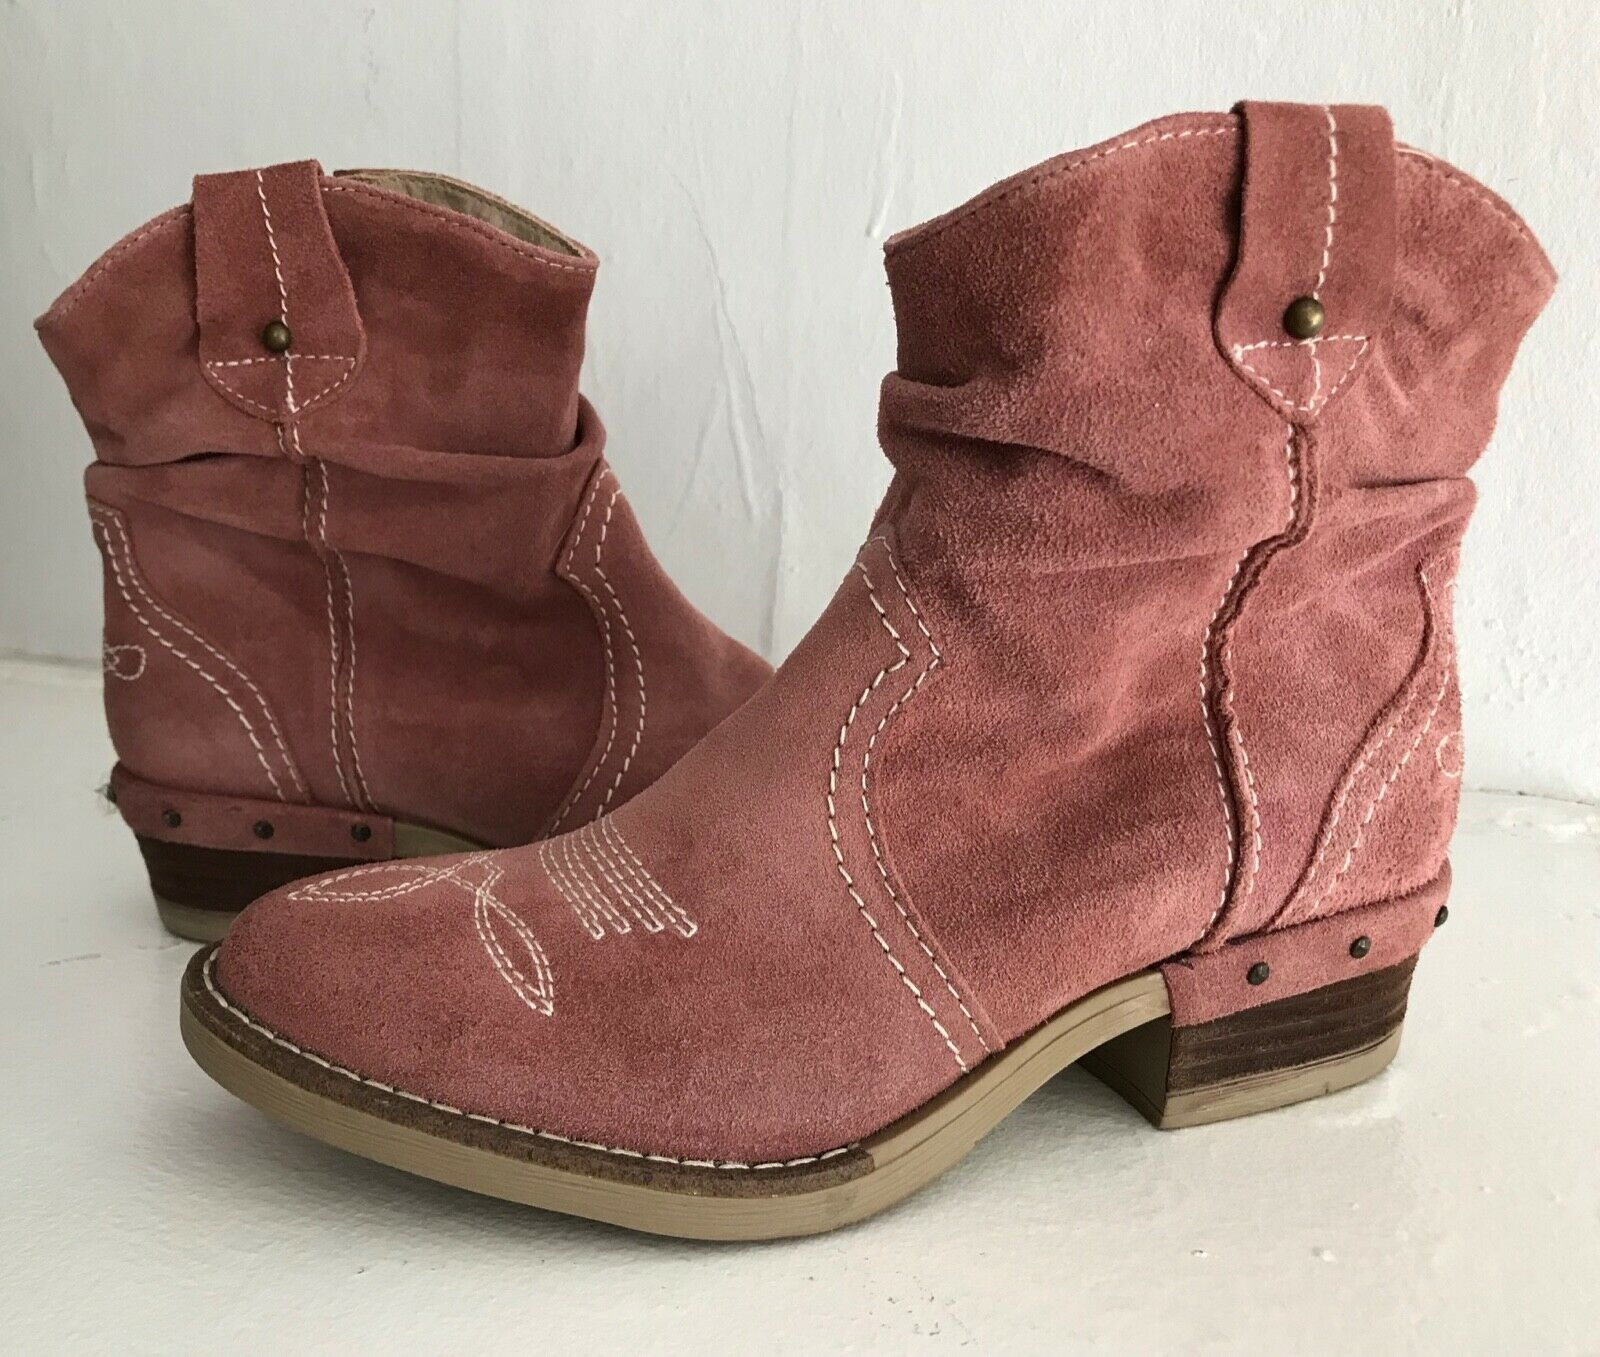 178 SUNDANCE Pink Suede ETTA BOOTS Western Cowboy Ankle HTF SPRING COLOR 38 7.5